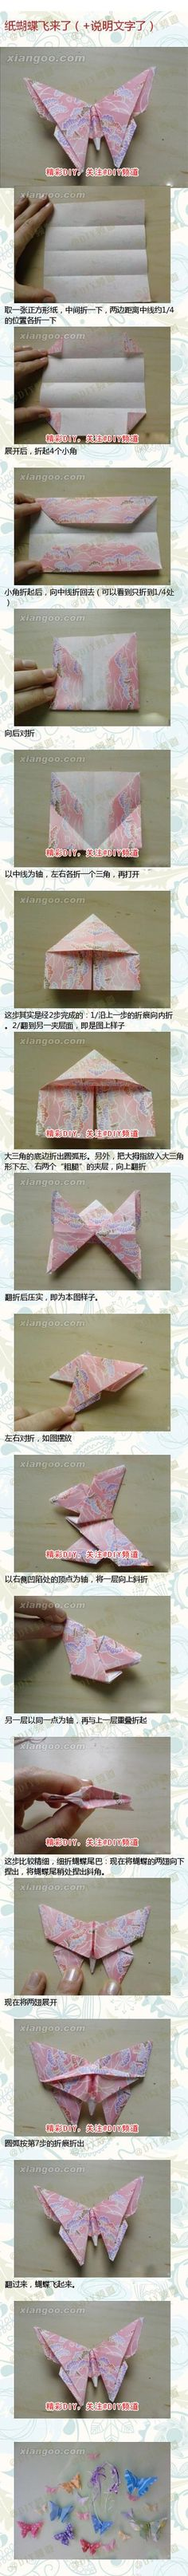 Origami Moth Butterfly Paper F